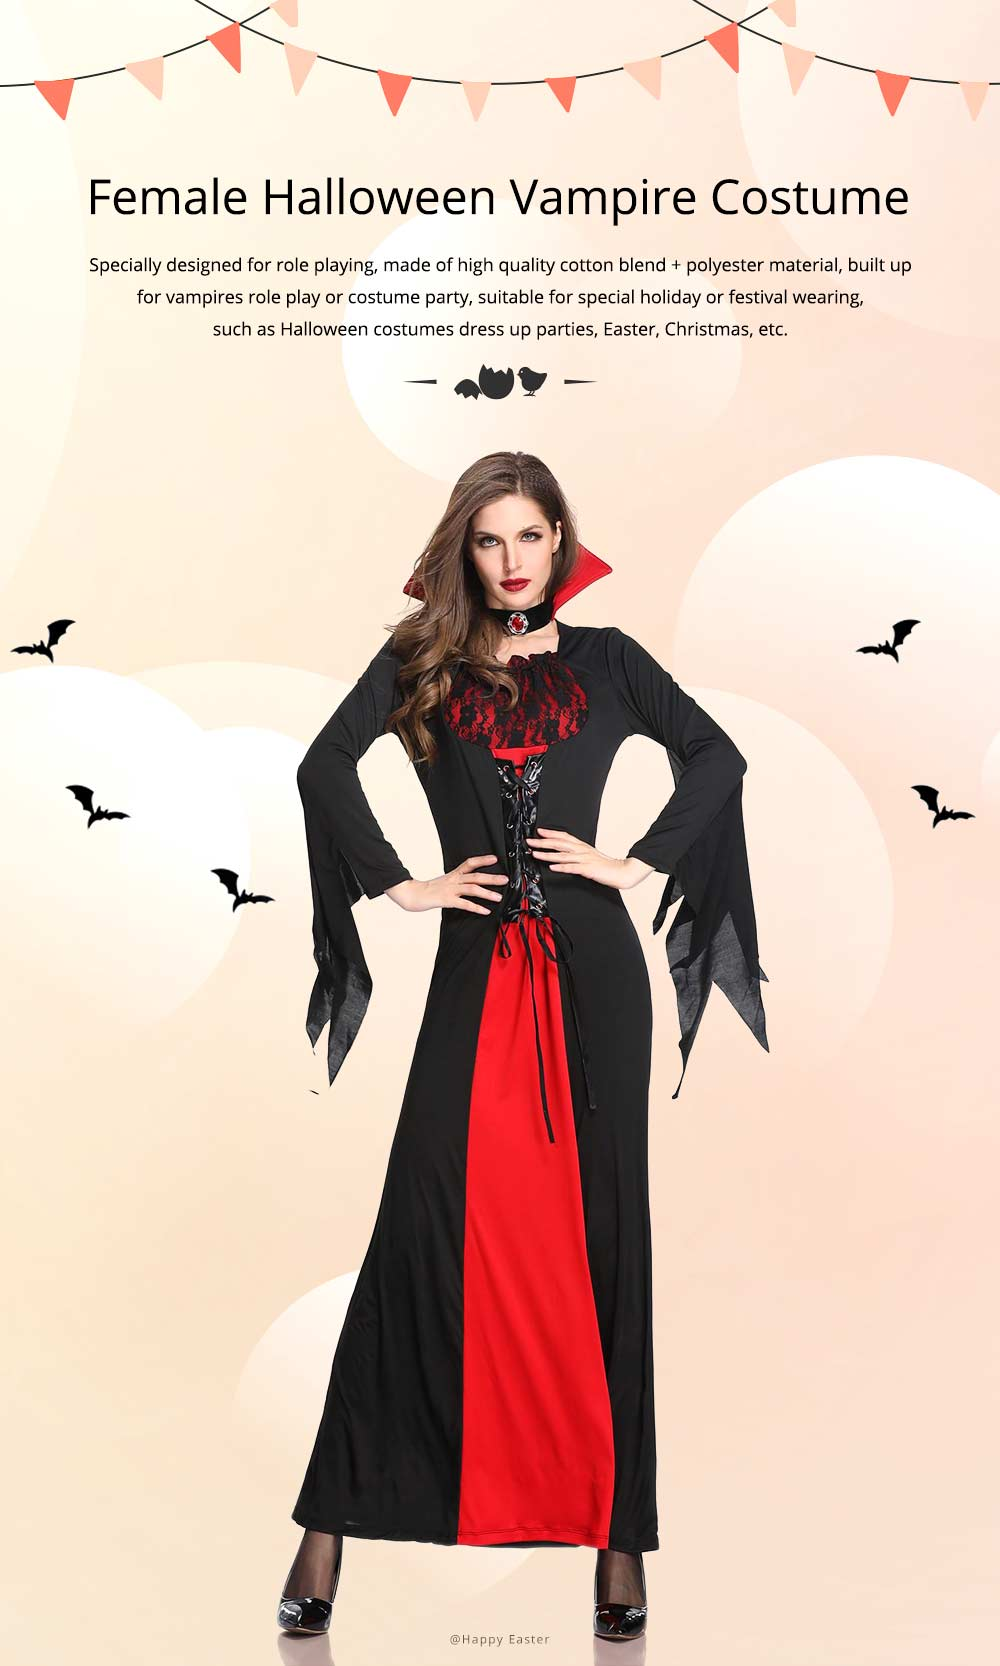 Vampire Costume, Queen Dress for Halloween Easter Christmas, Halloween Costume for Women Adult Cosplay Dress Role Playing Costume 0